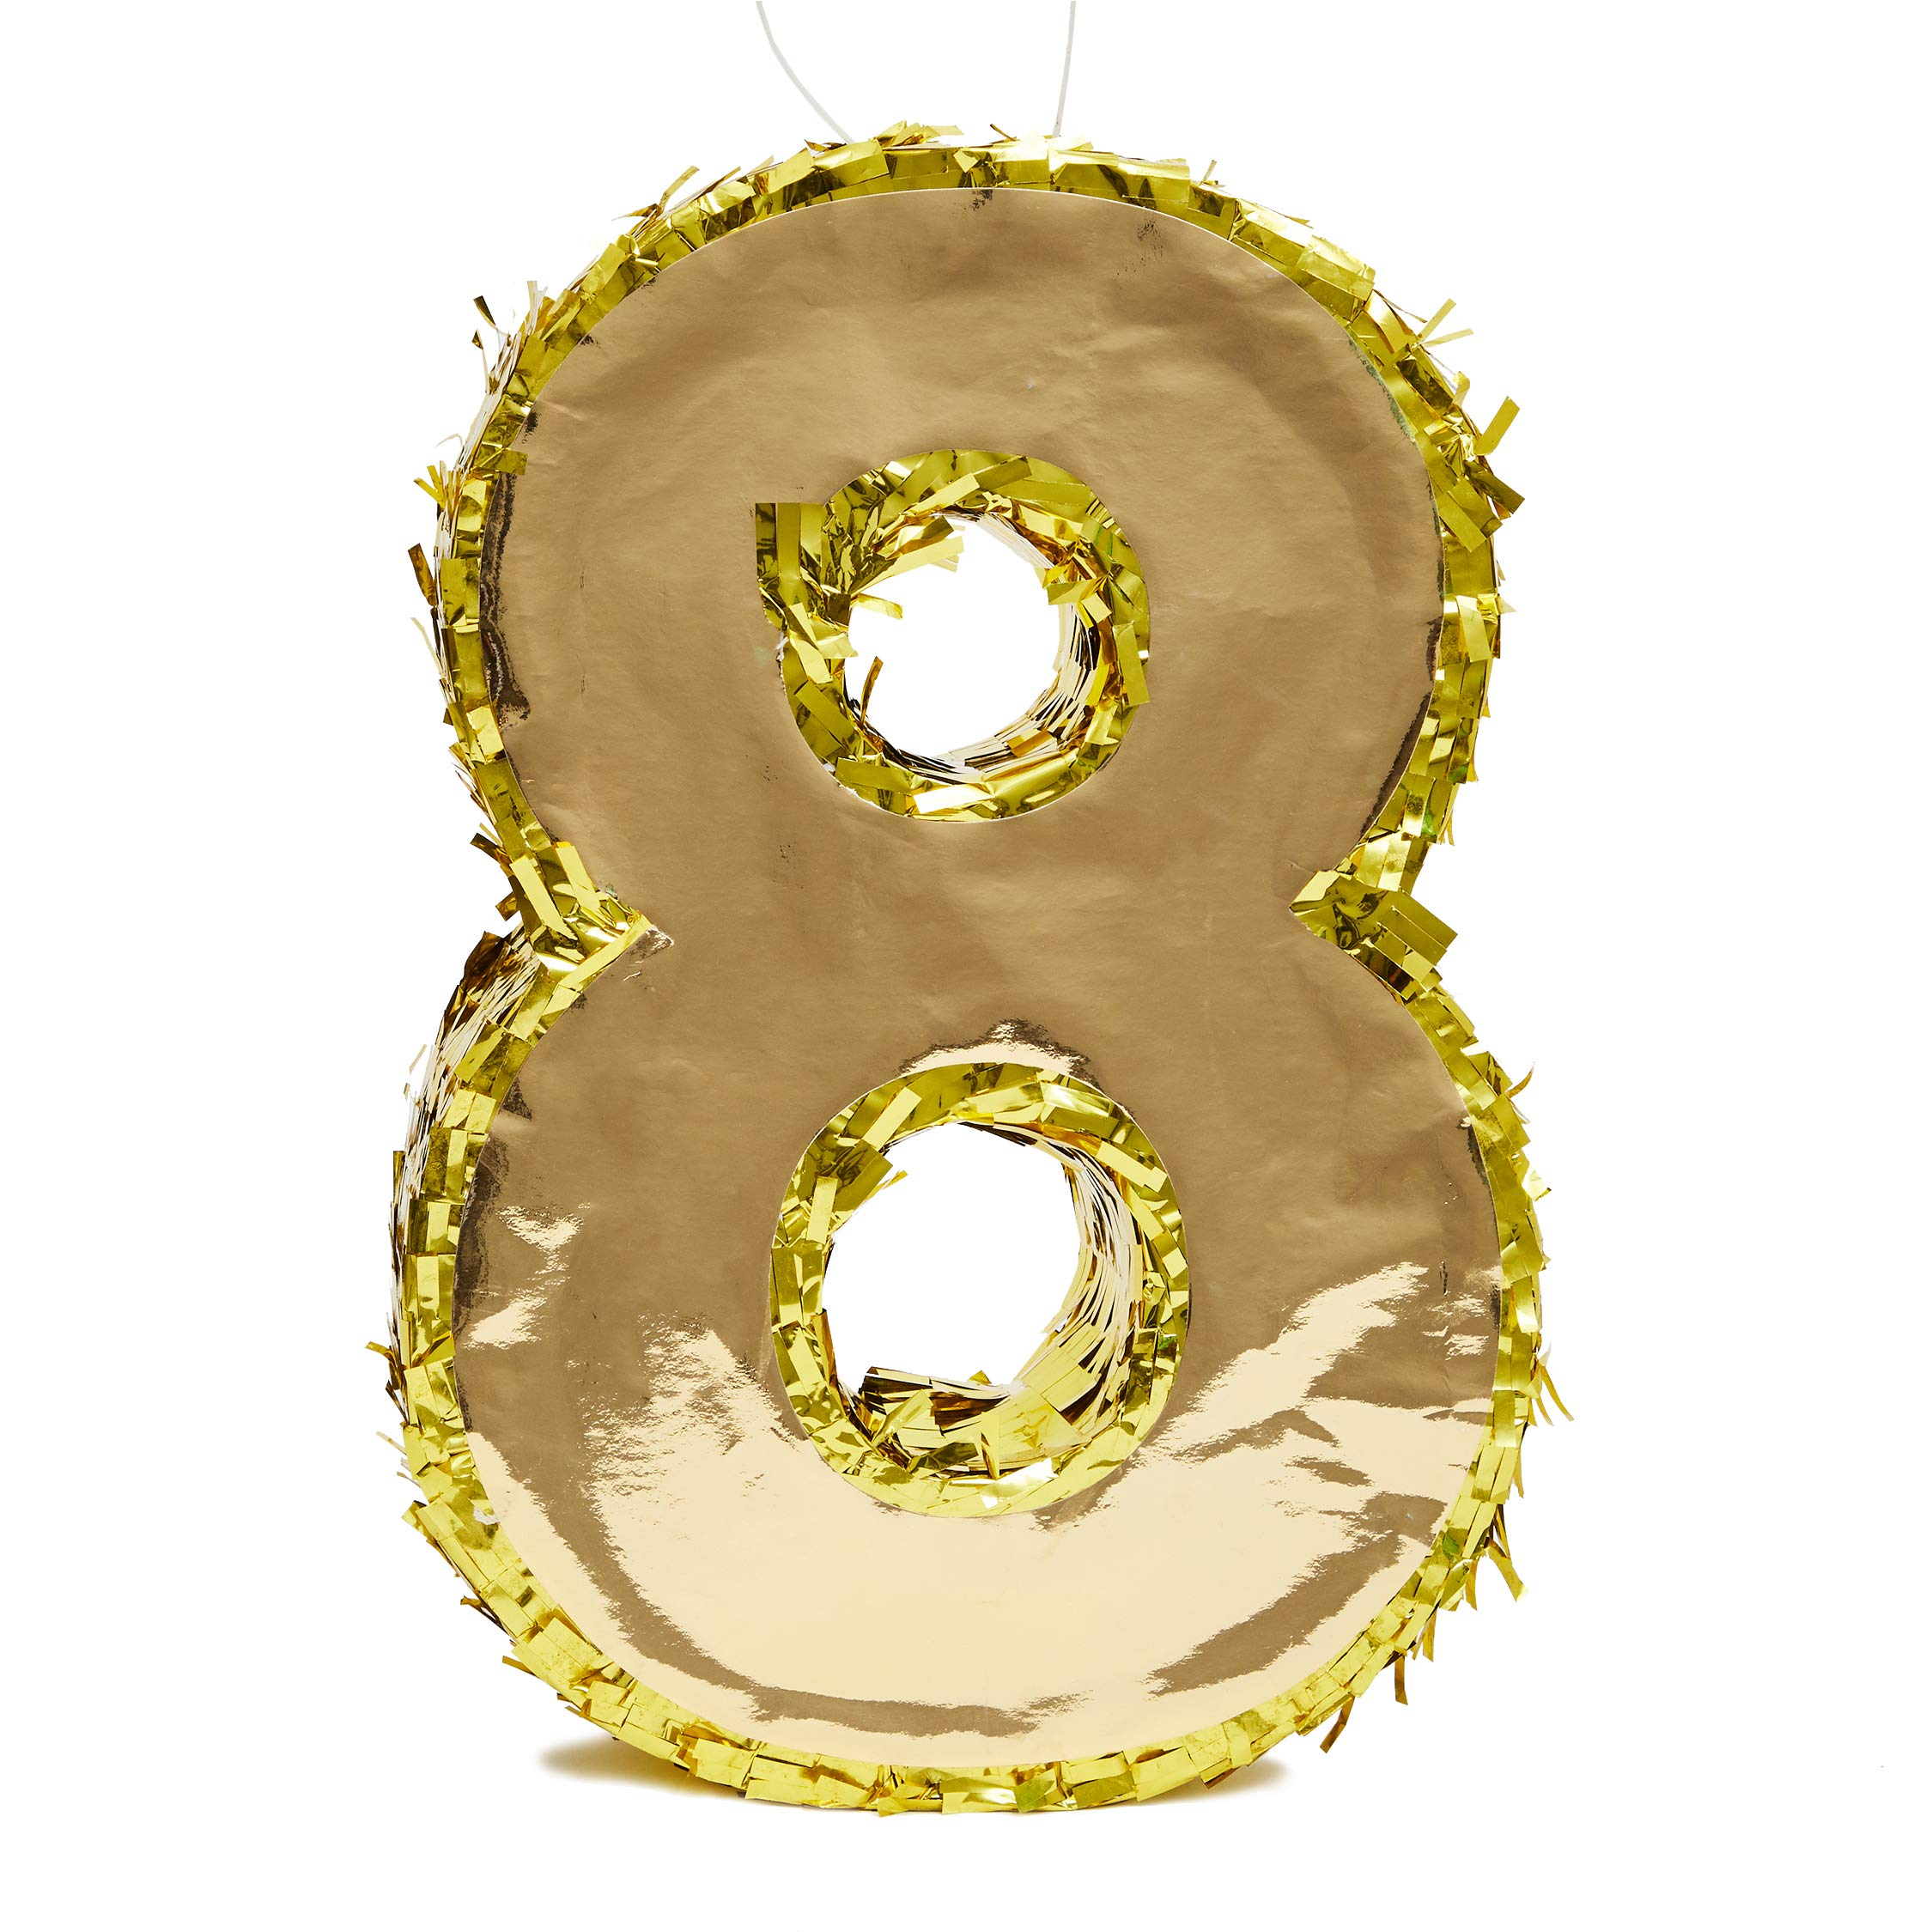 Juvale Small Number 8 Gold Foil Pinata, Eighth Birthday Party Supplies, 15.5 x 10.5 x 3 Inches by Juvale